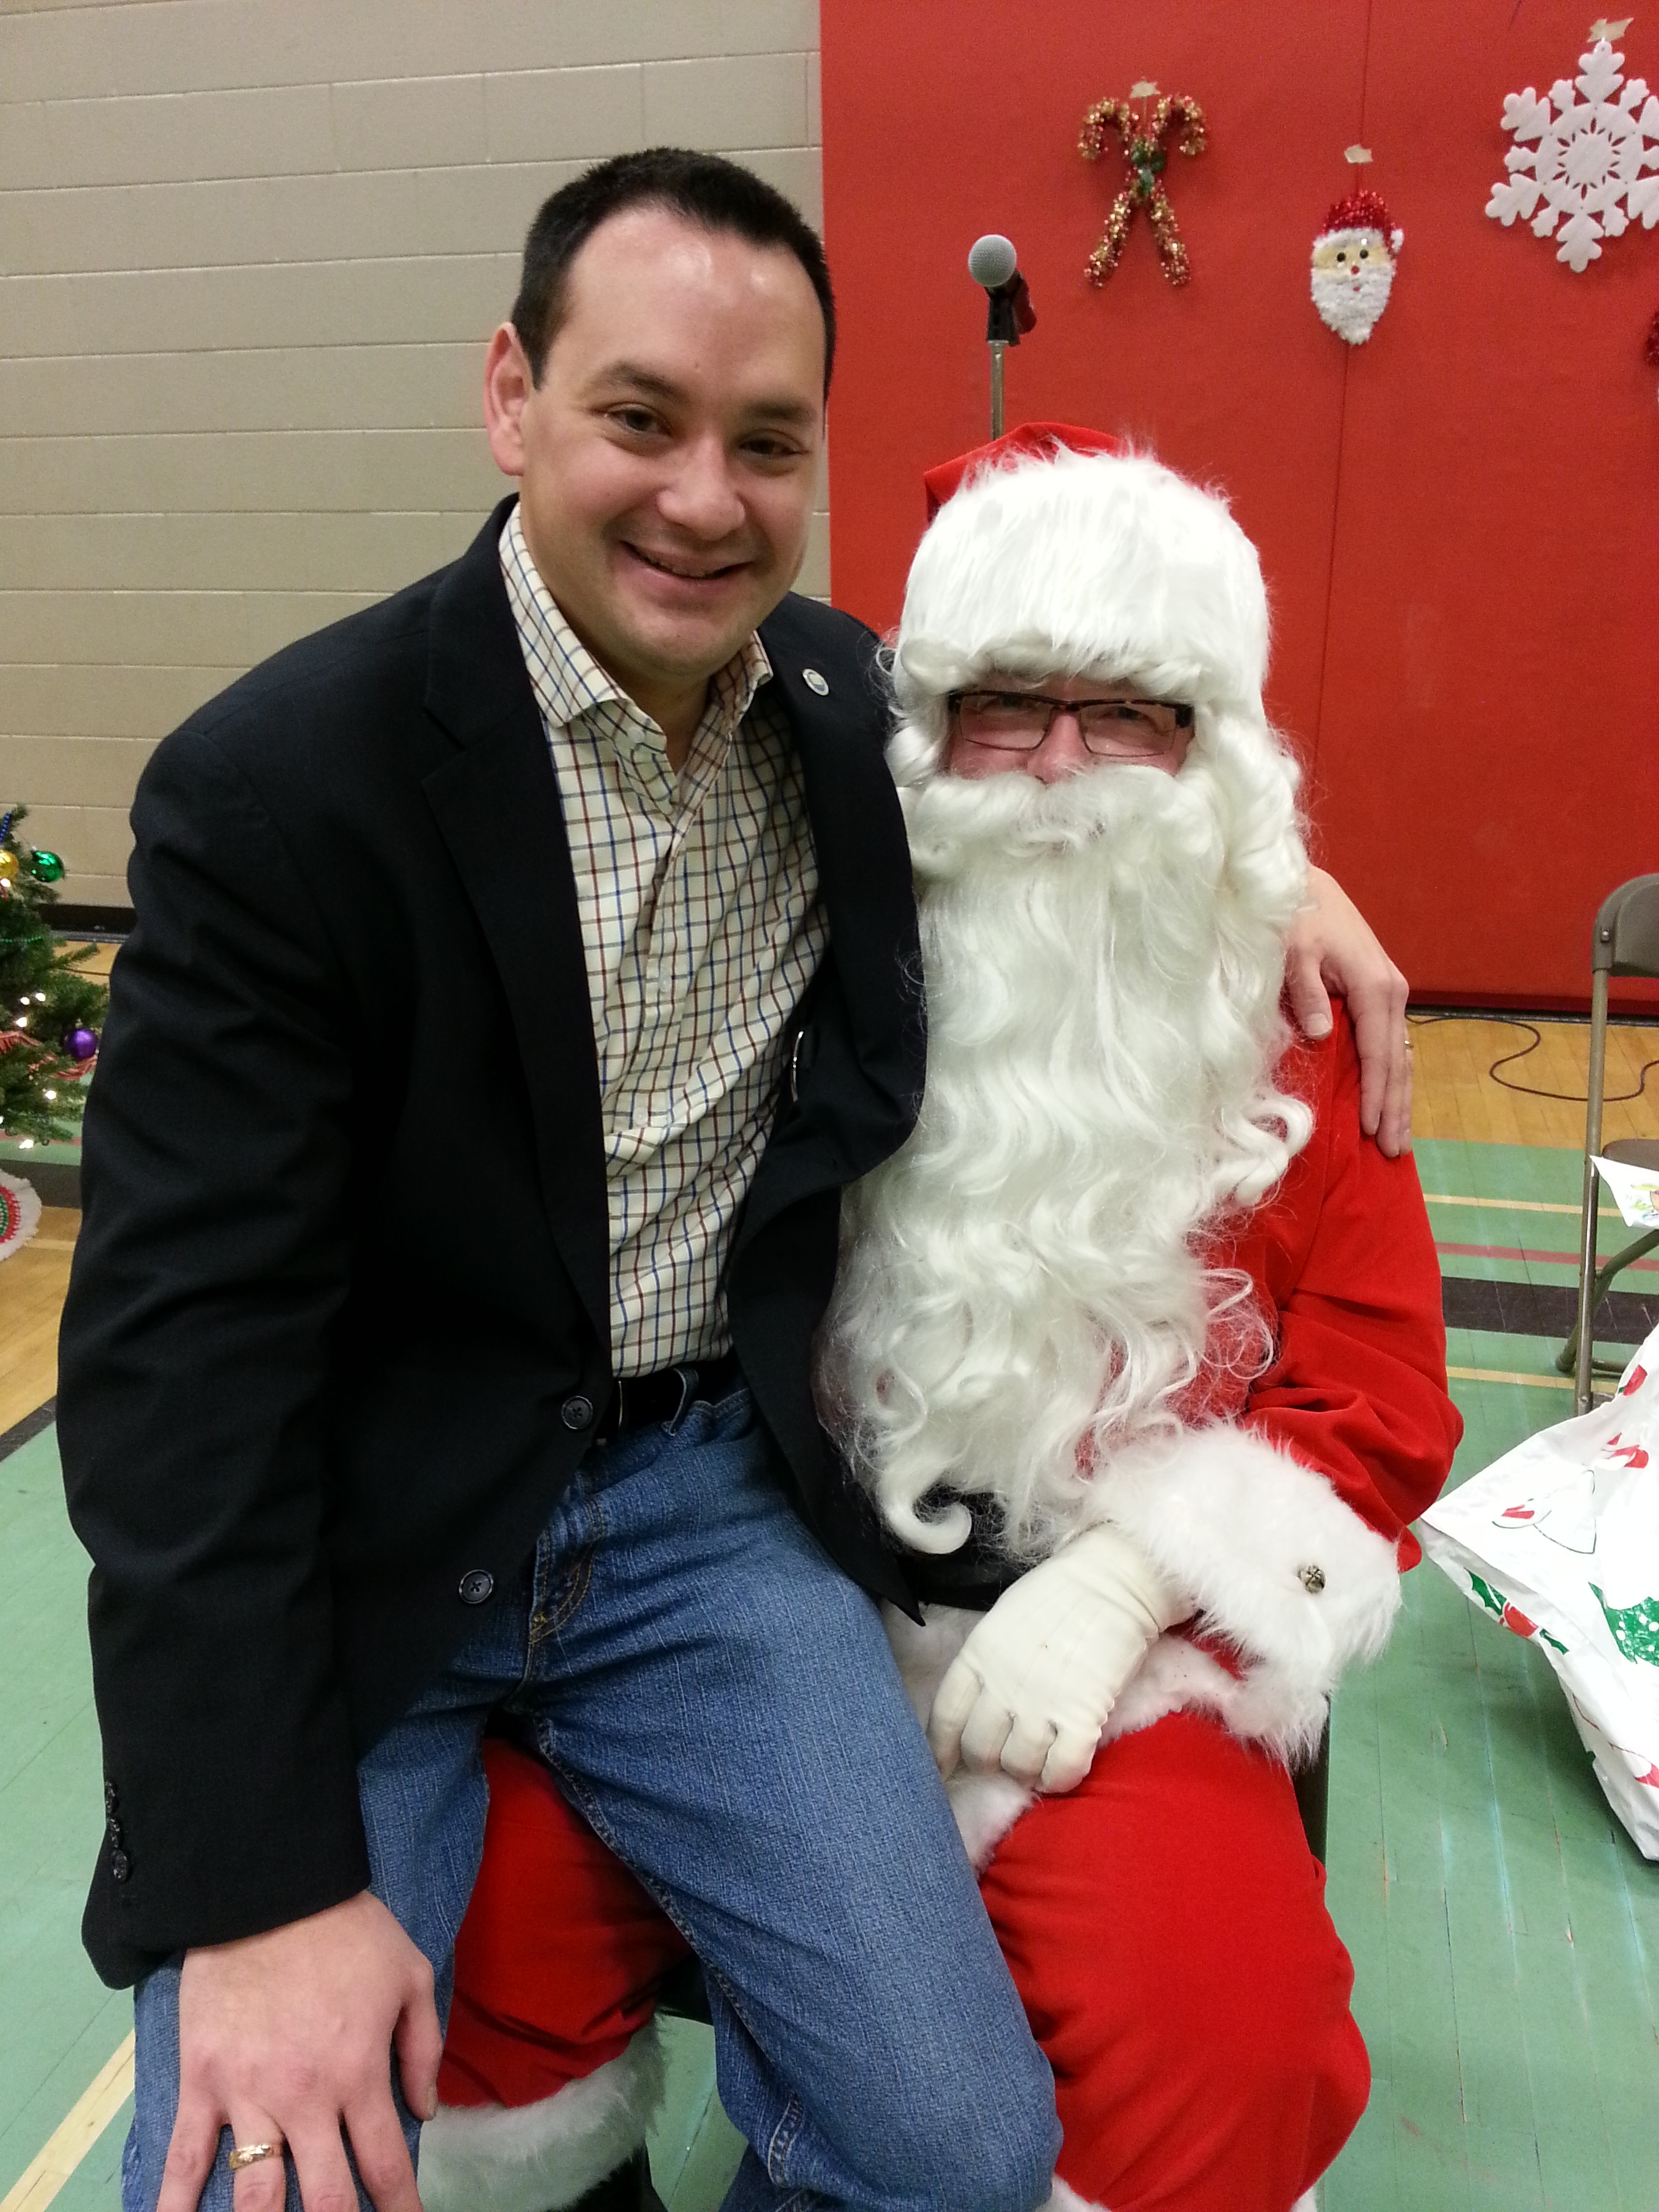 Chris%20Gorman%20with%20Santa.JPG